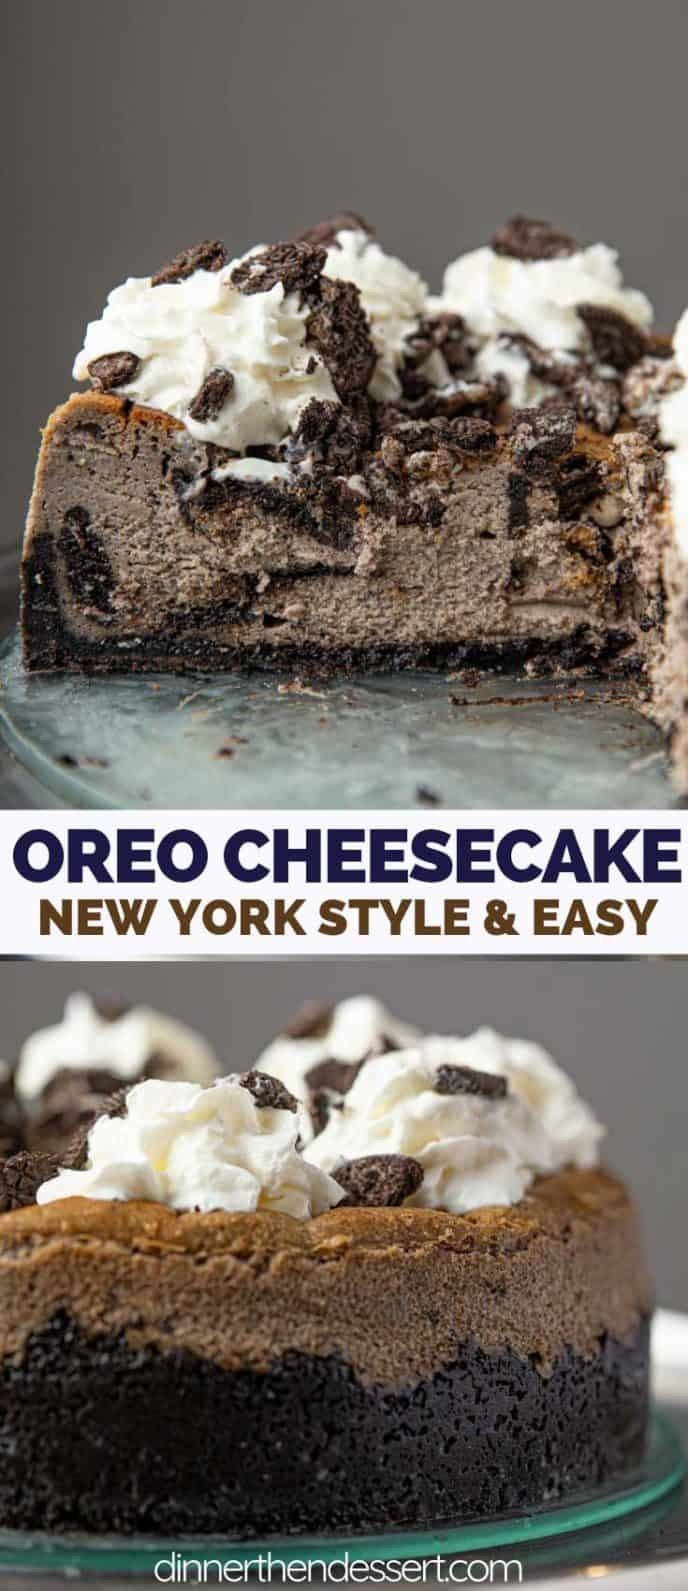 New York Style Oreo Cheesecake